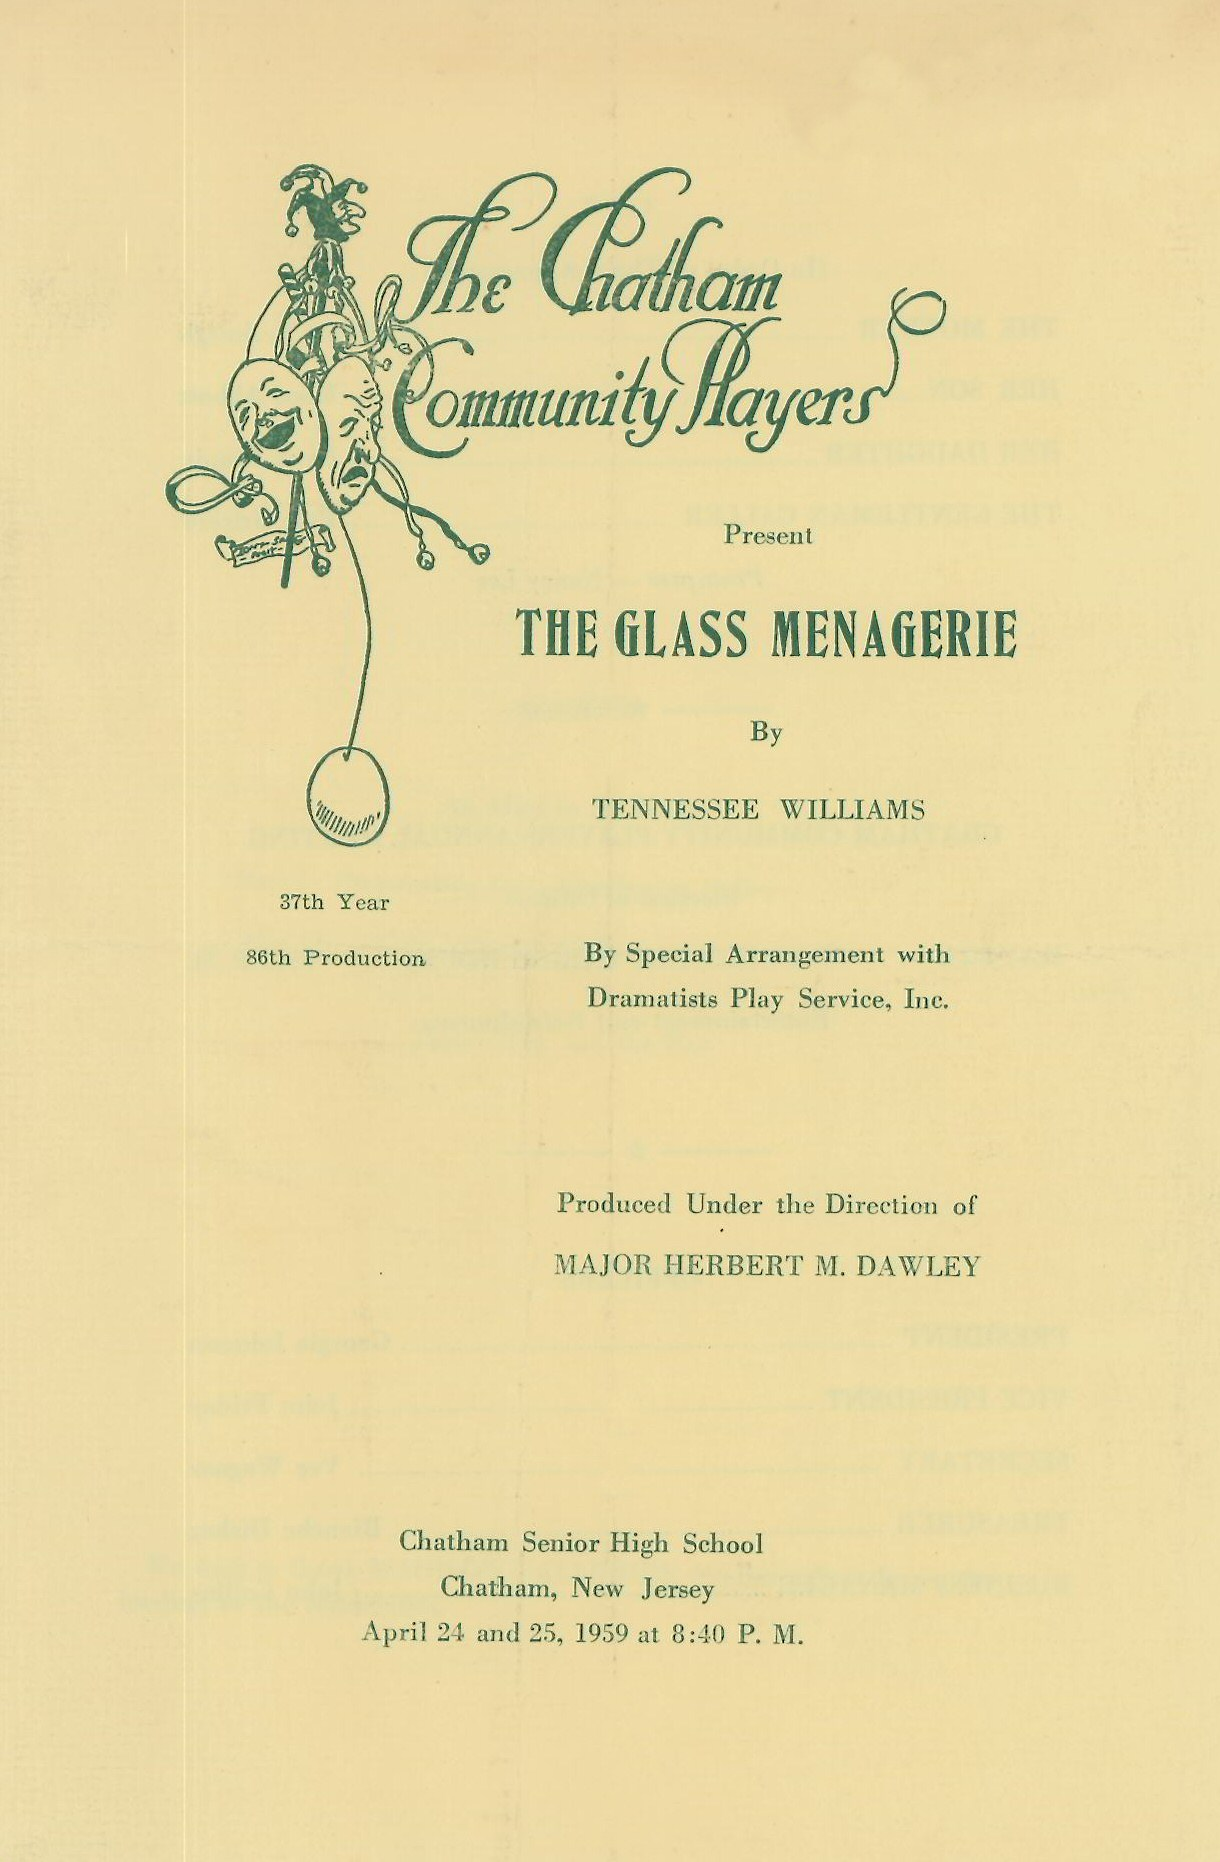 The Glass Menagerie (1959)